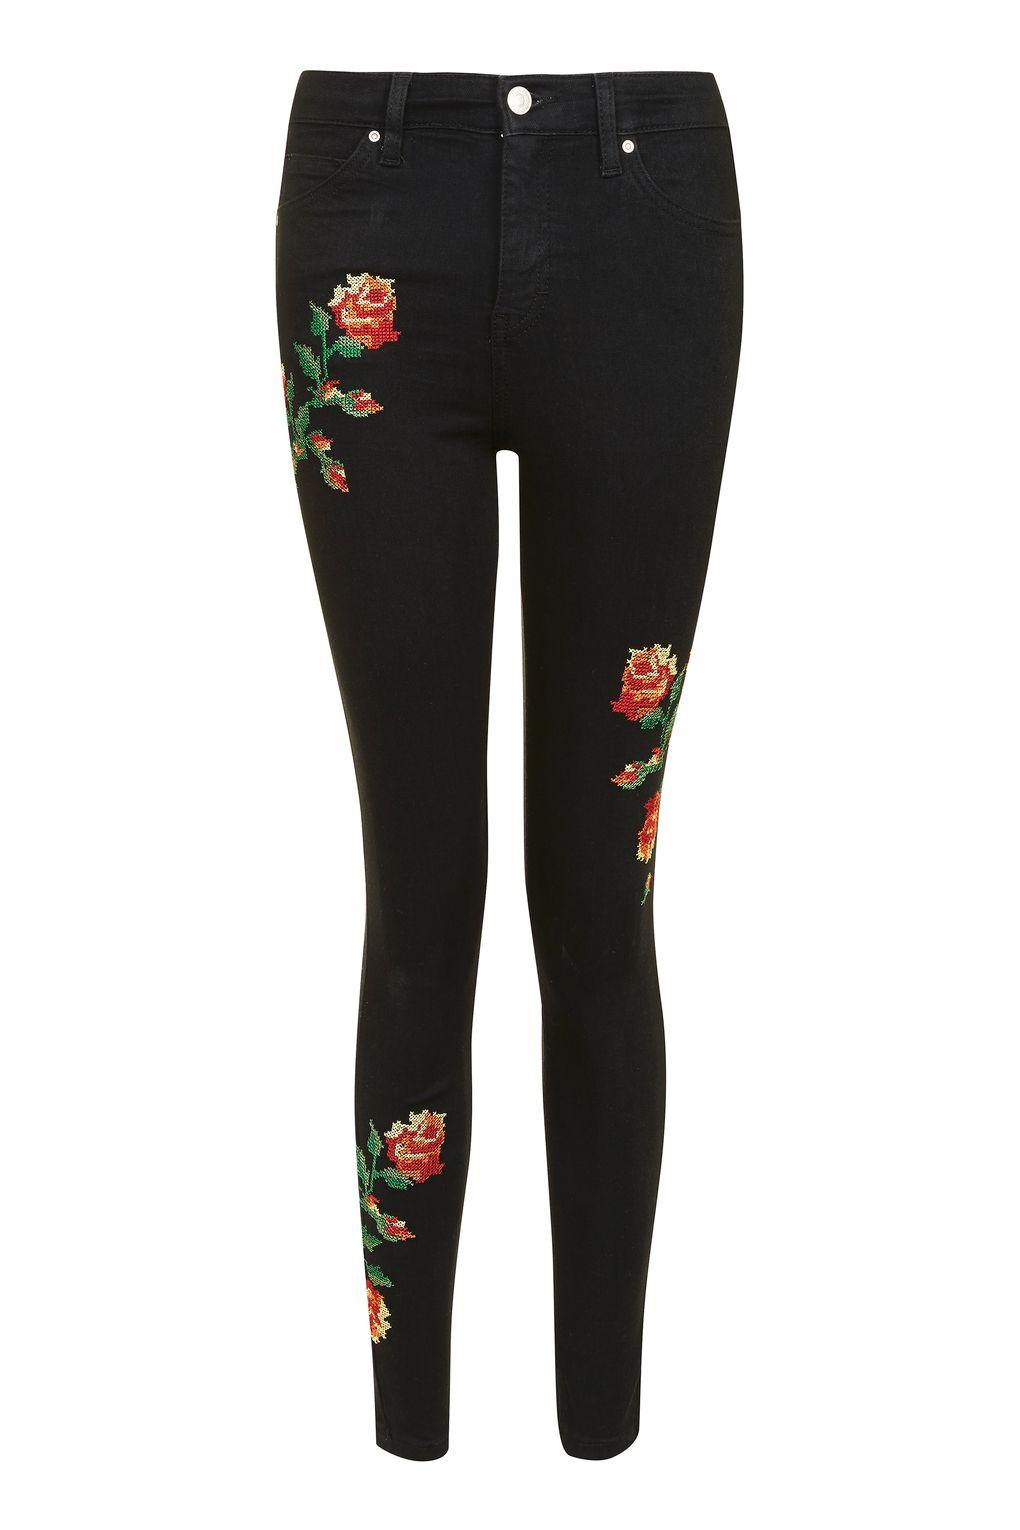 Topshop Embroidered Jamie Jeans